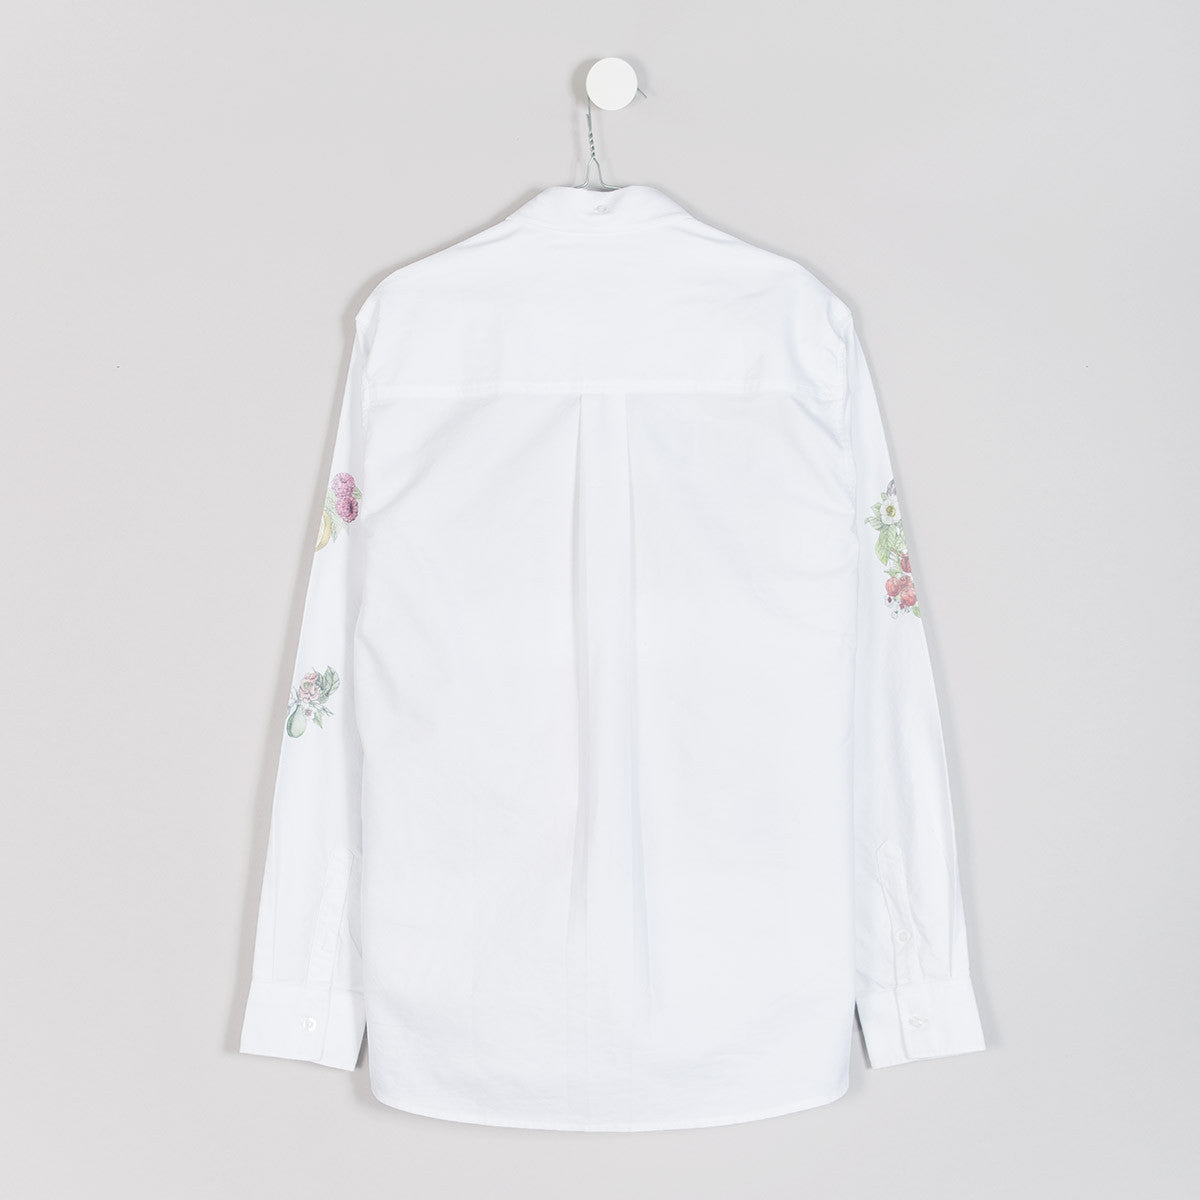 Soulland Samuel Shirt – White/Multi  - CARTOCON